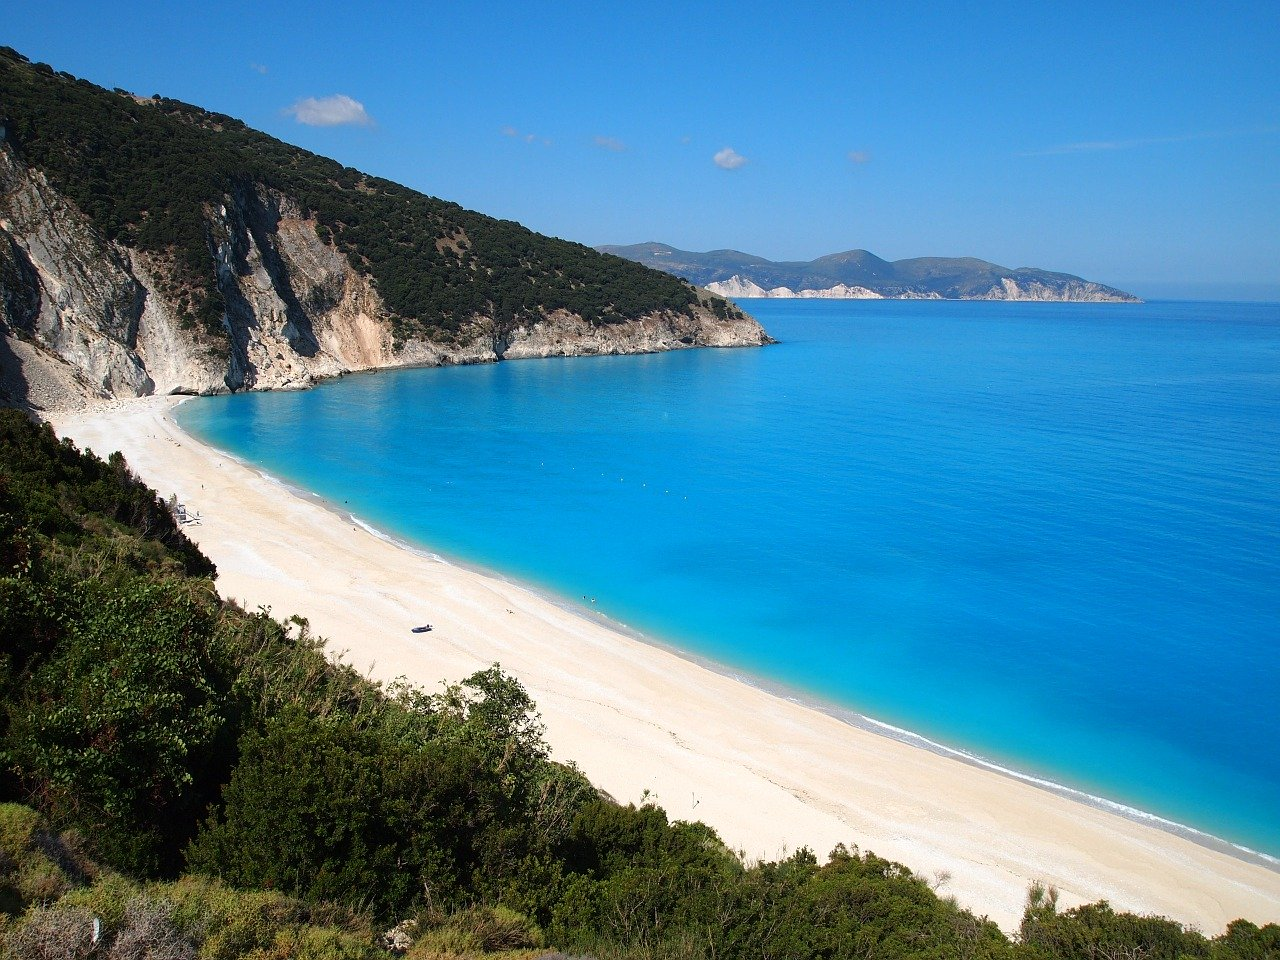 Top 10 Beaches in Europe That Look Absolutely Incredible